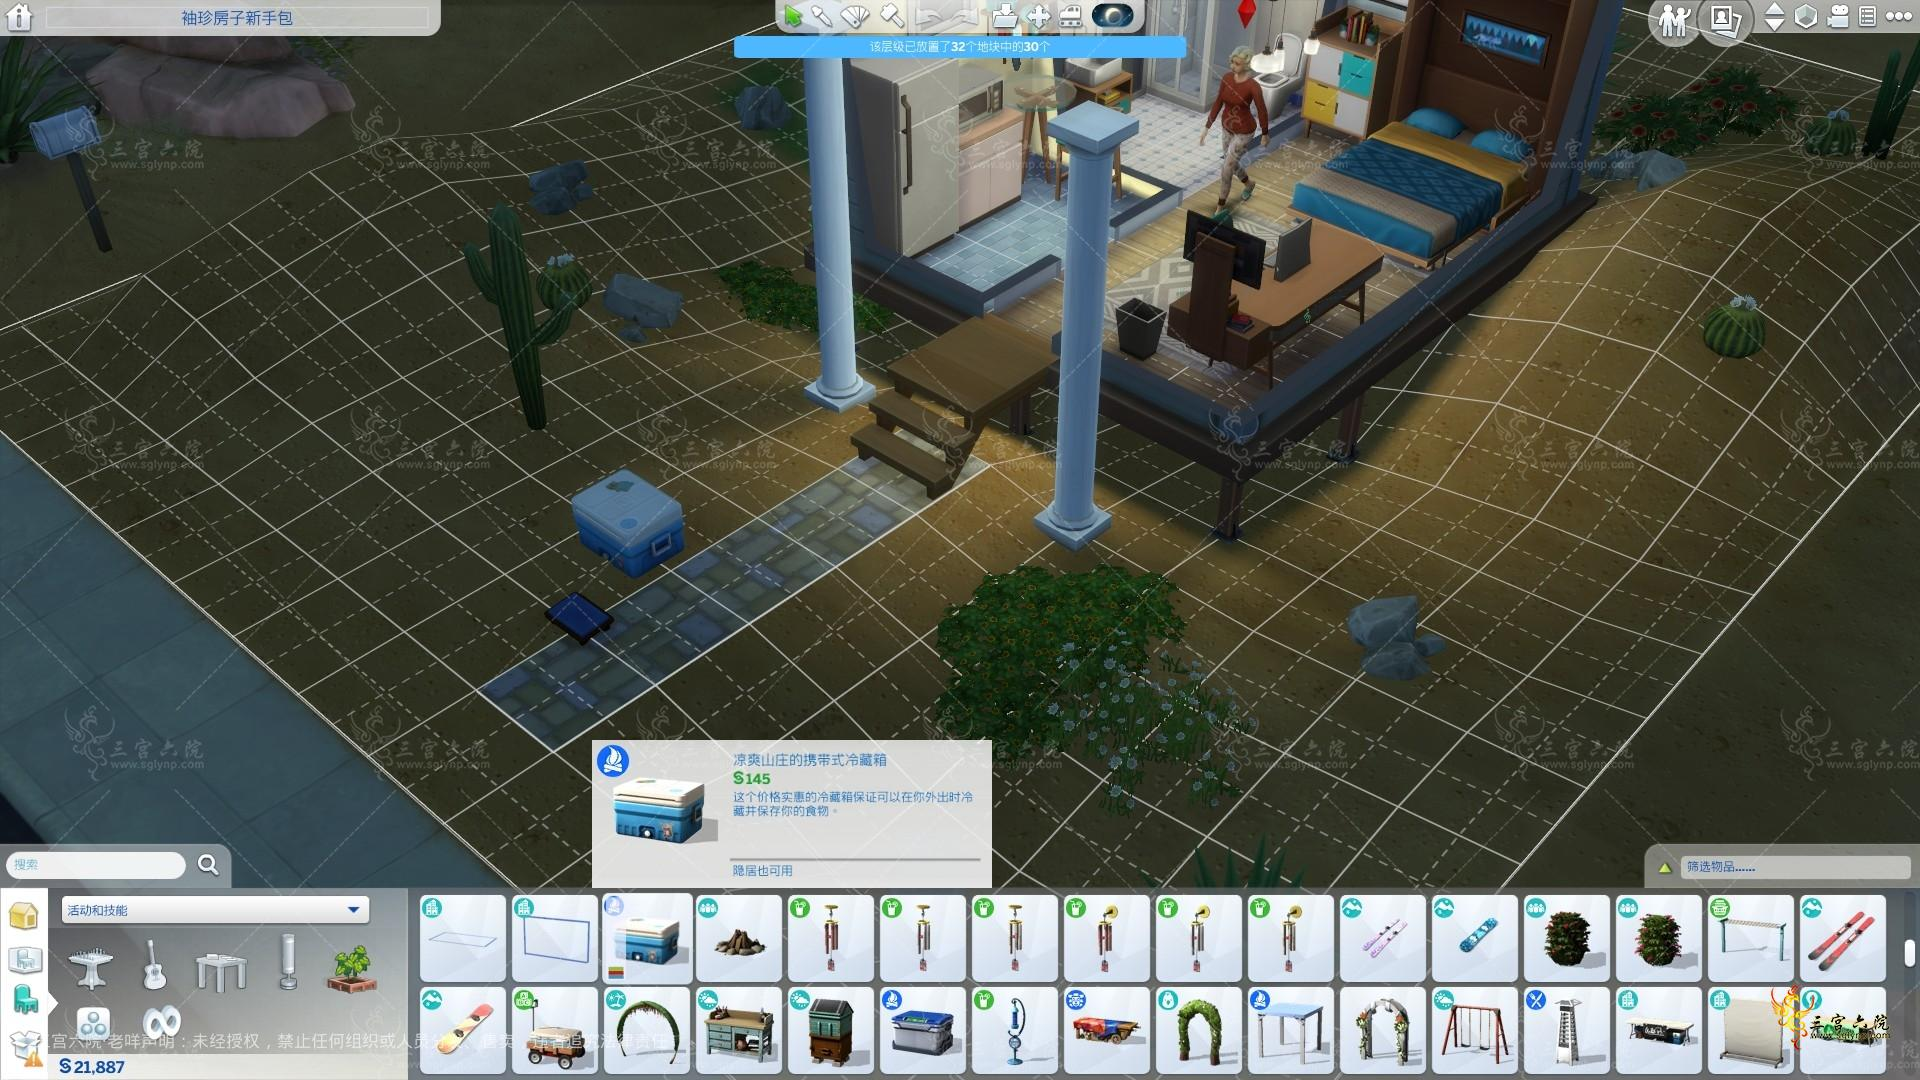 The Sims 4 2021_10_6 23_09_43.png